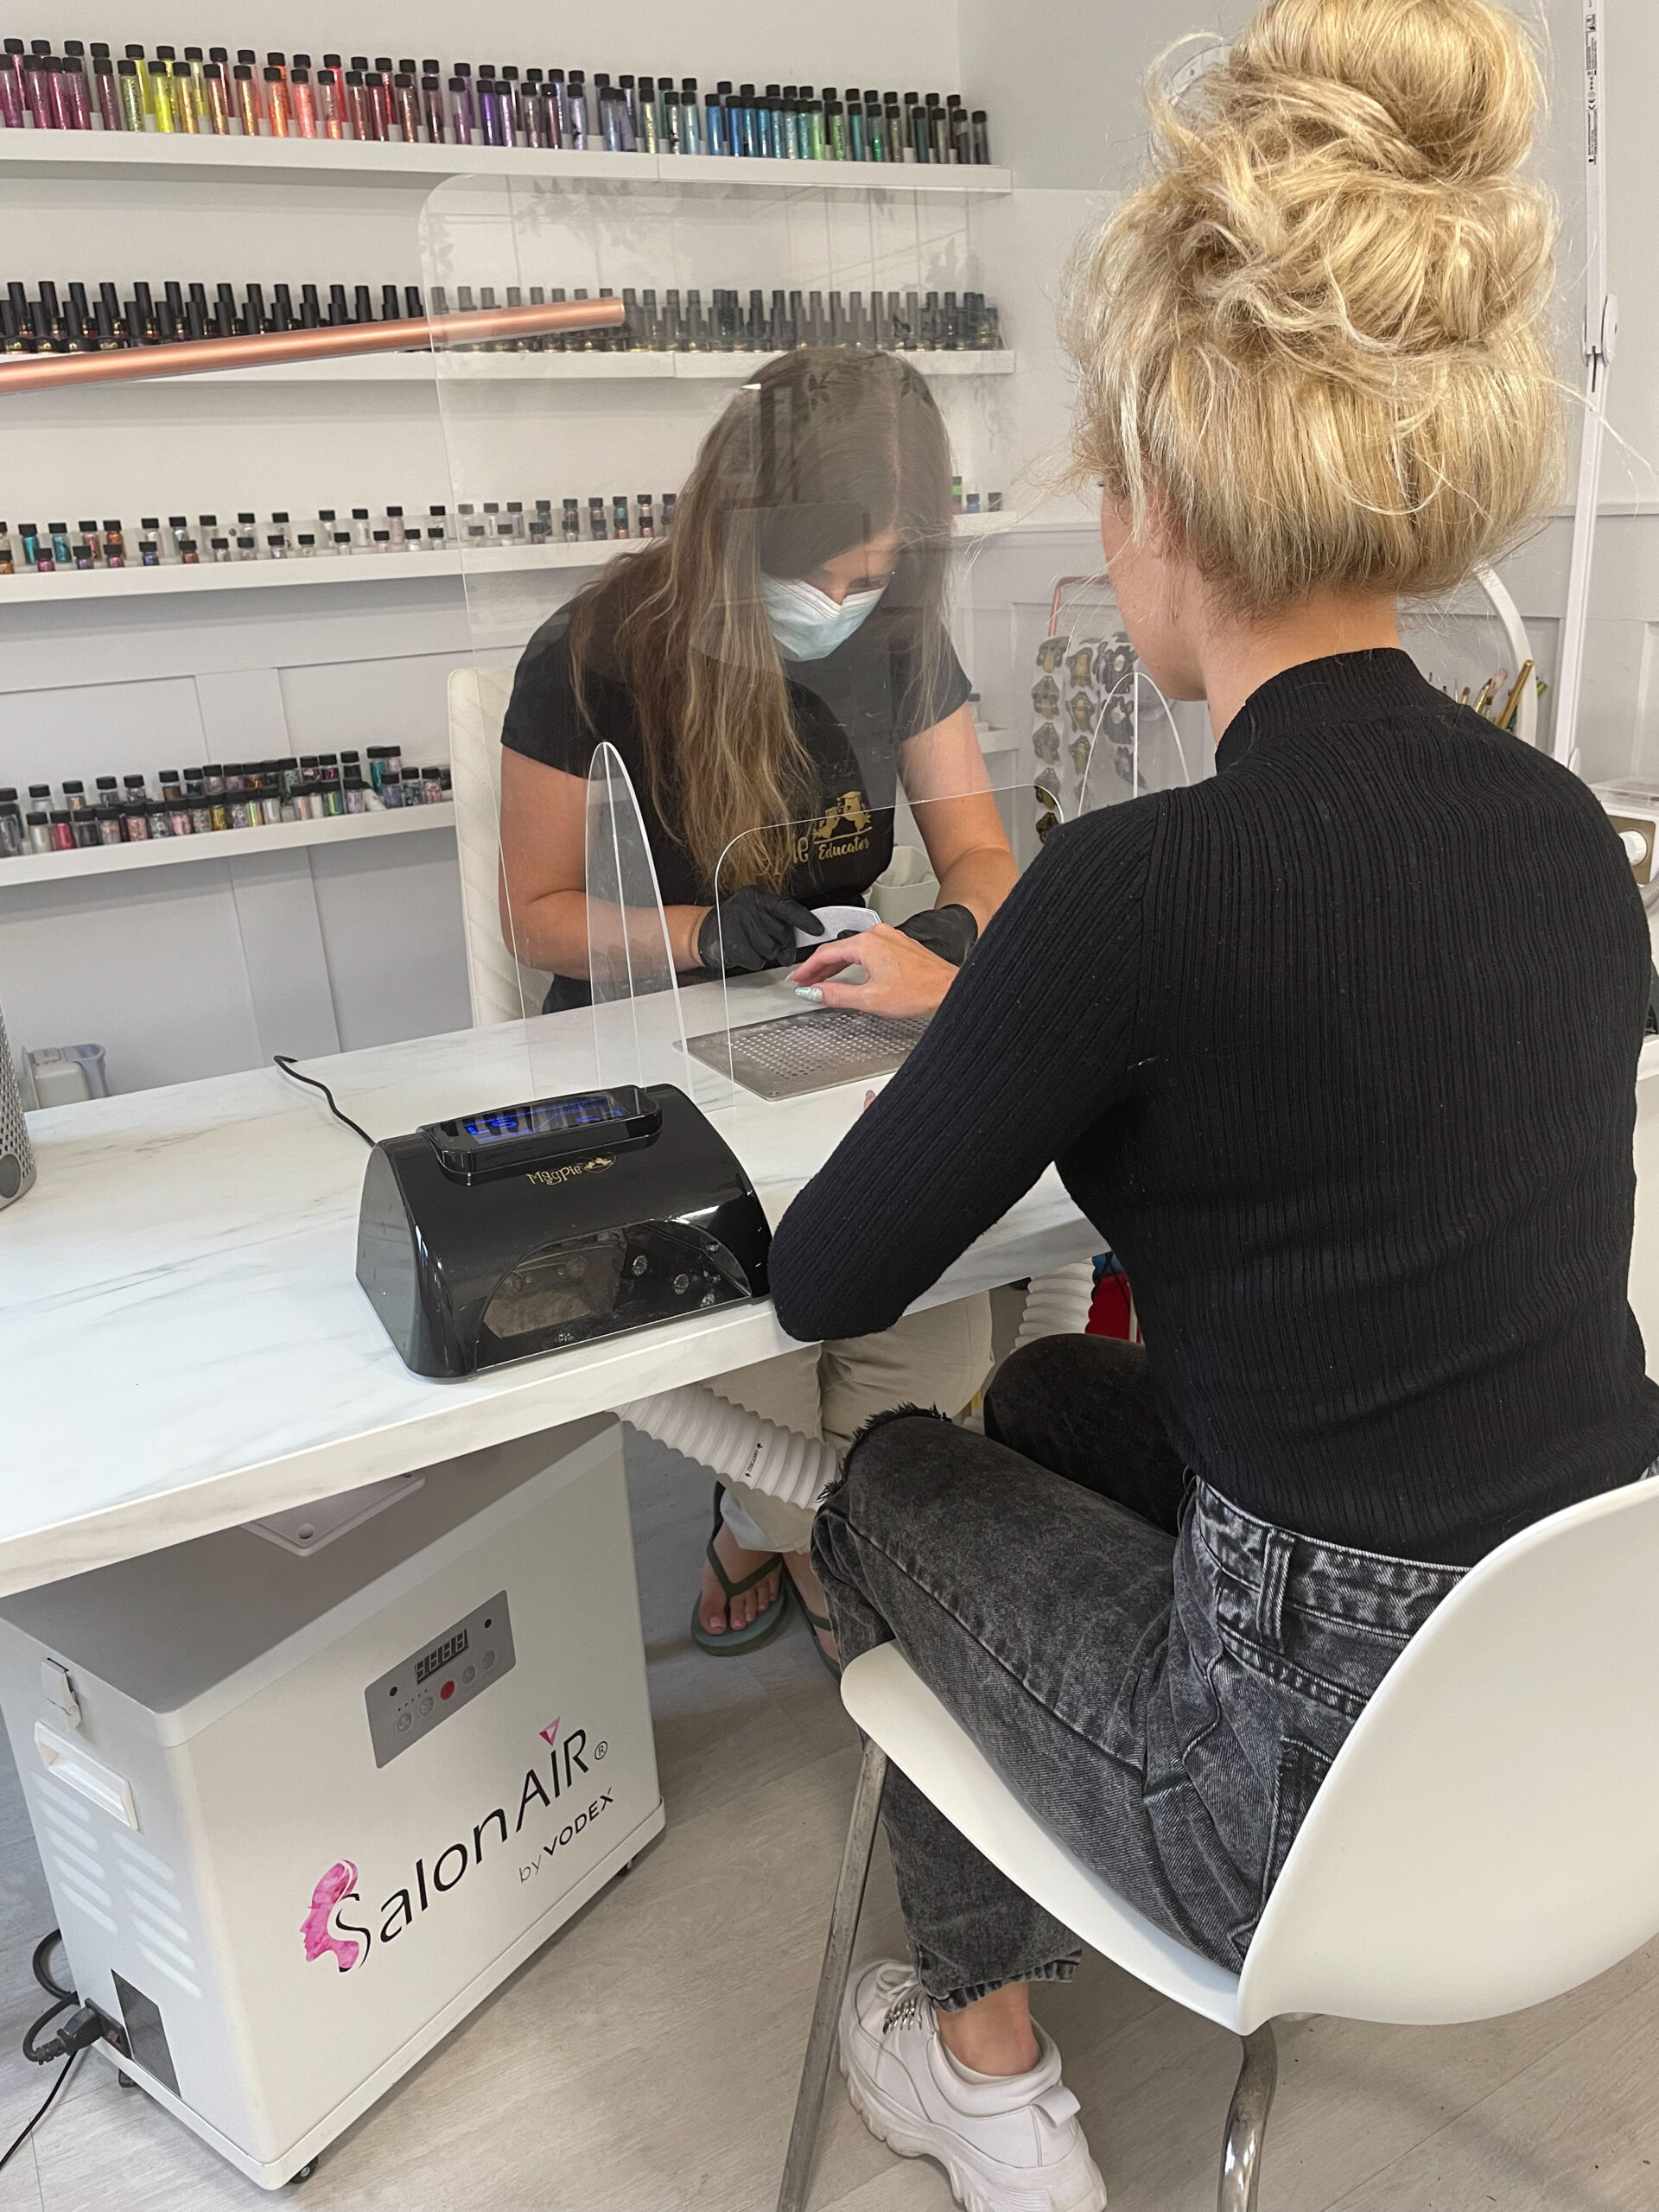 Lady having nails done in Salon with SalonAir extraction system